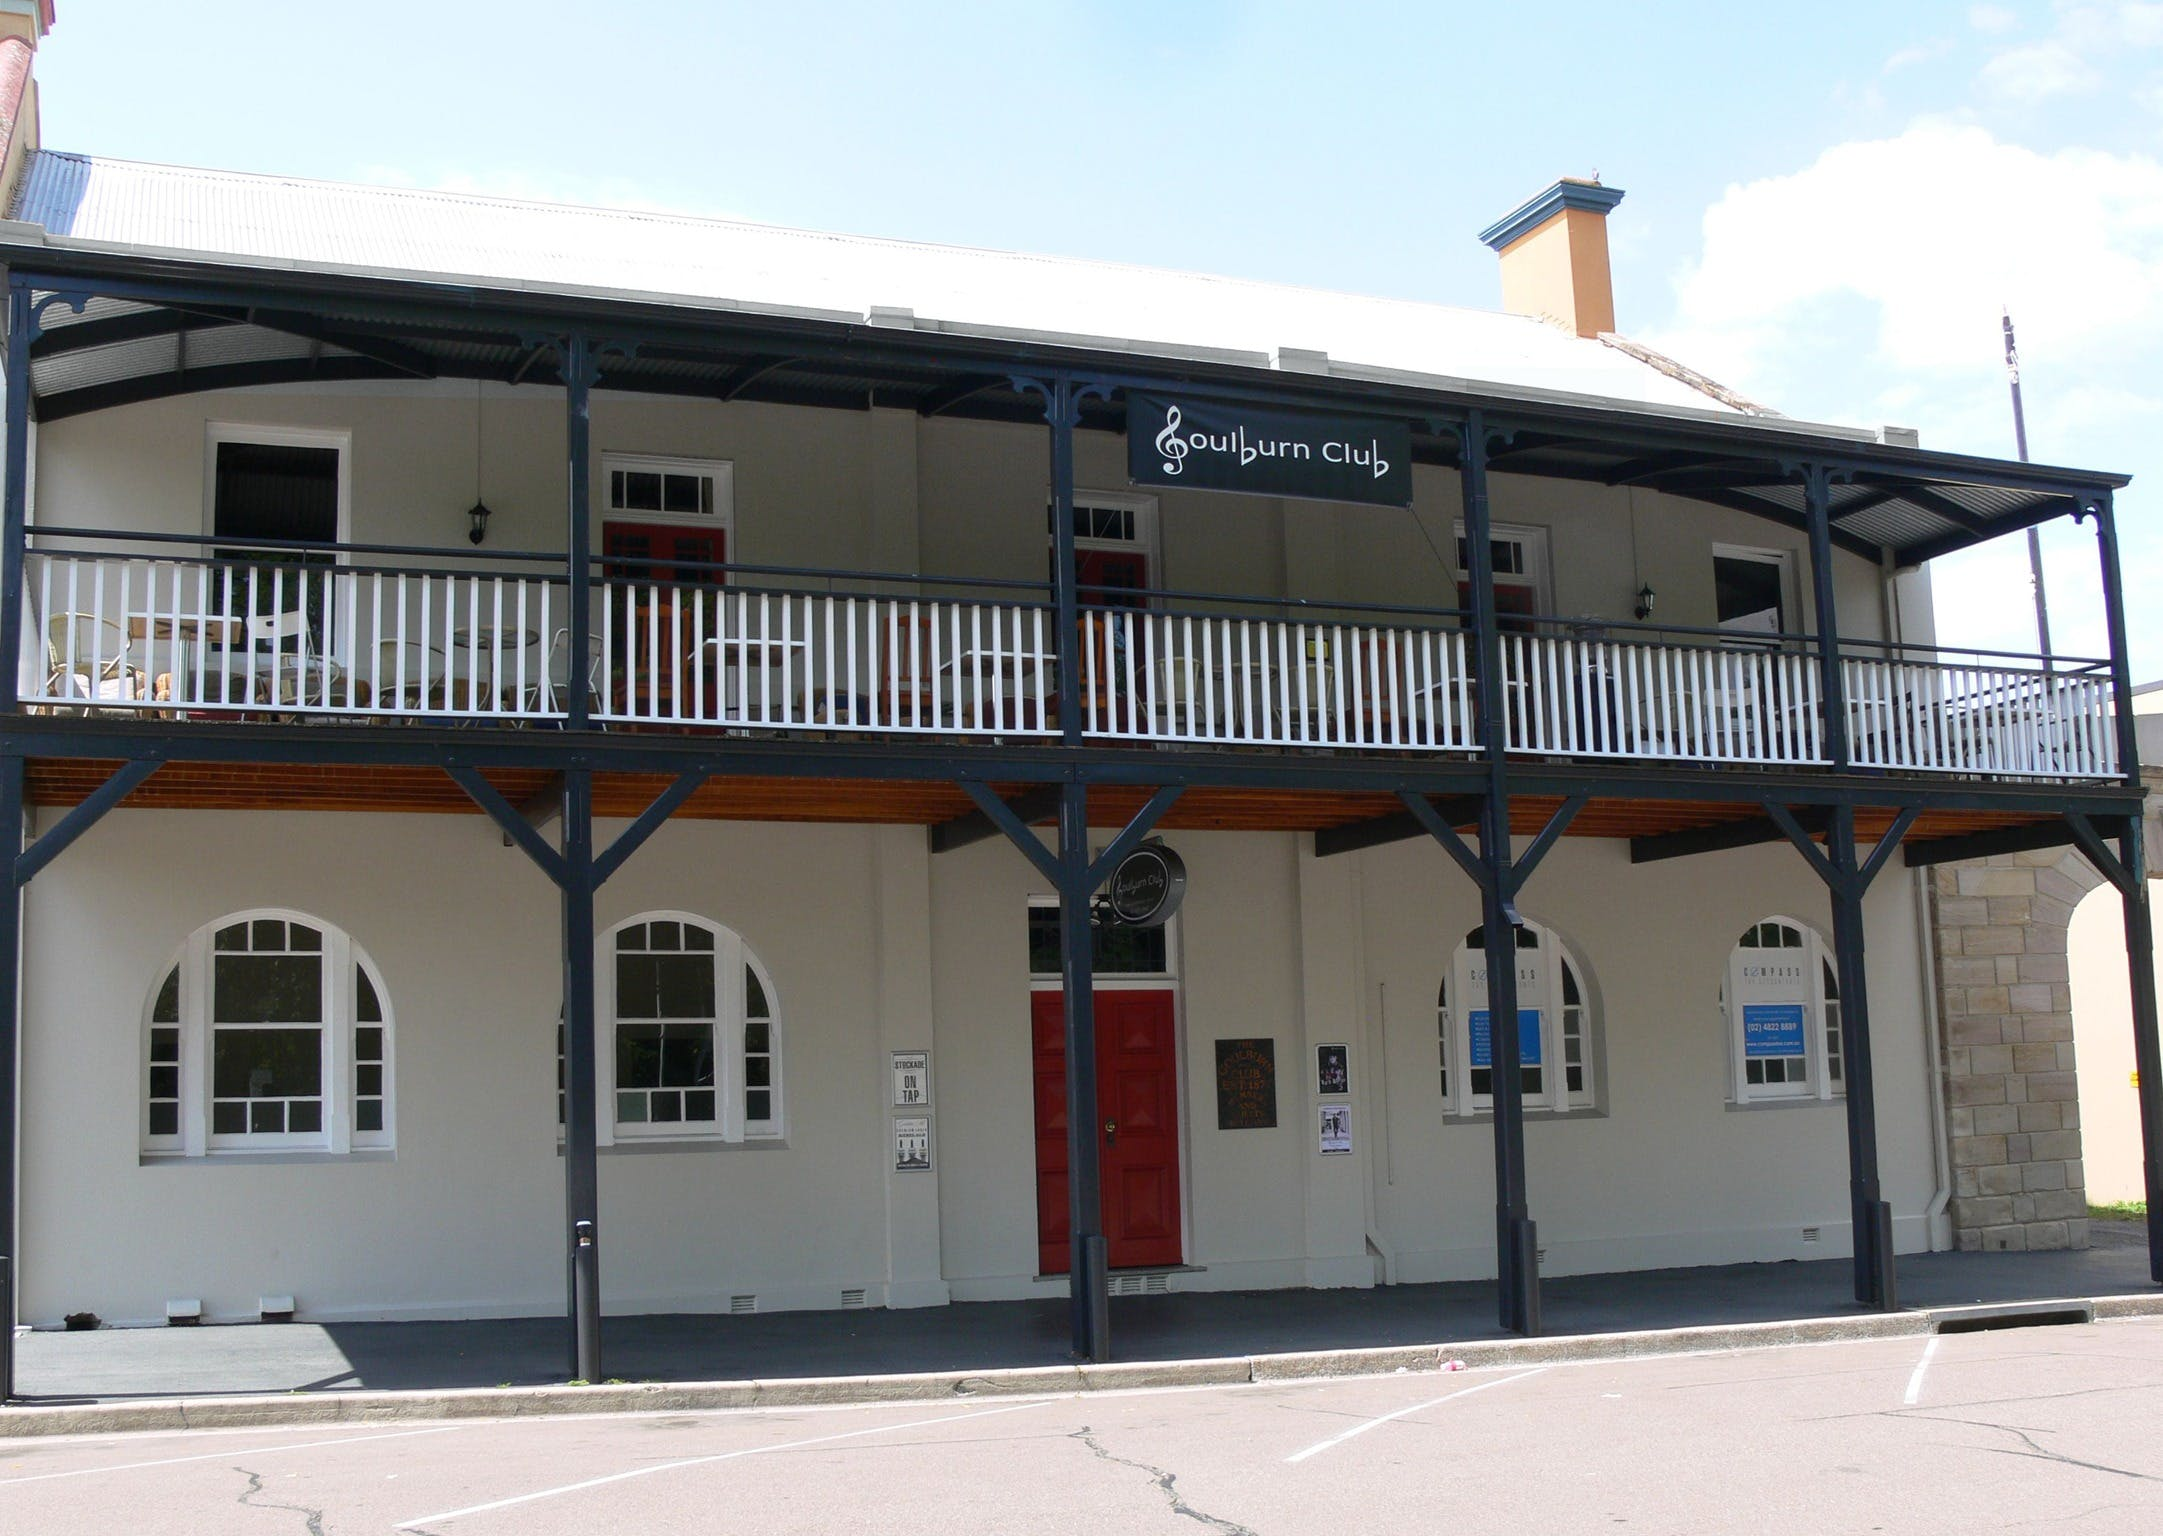 Open Mic Night at the Goulburn Club - Palm Beach Accommodation